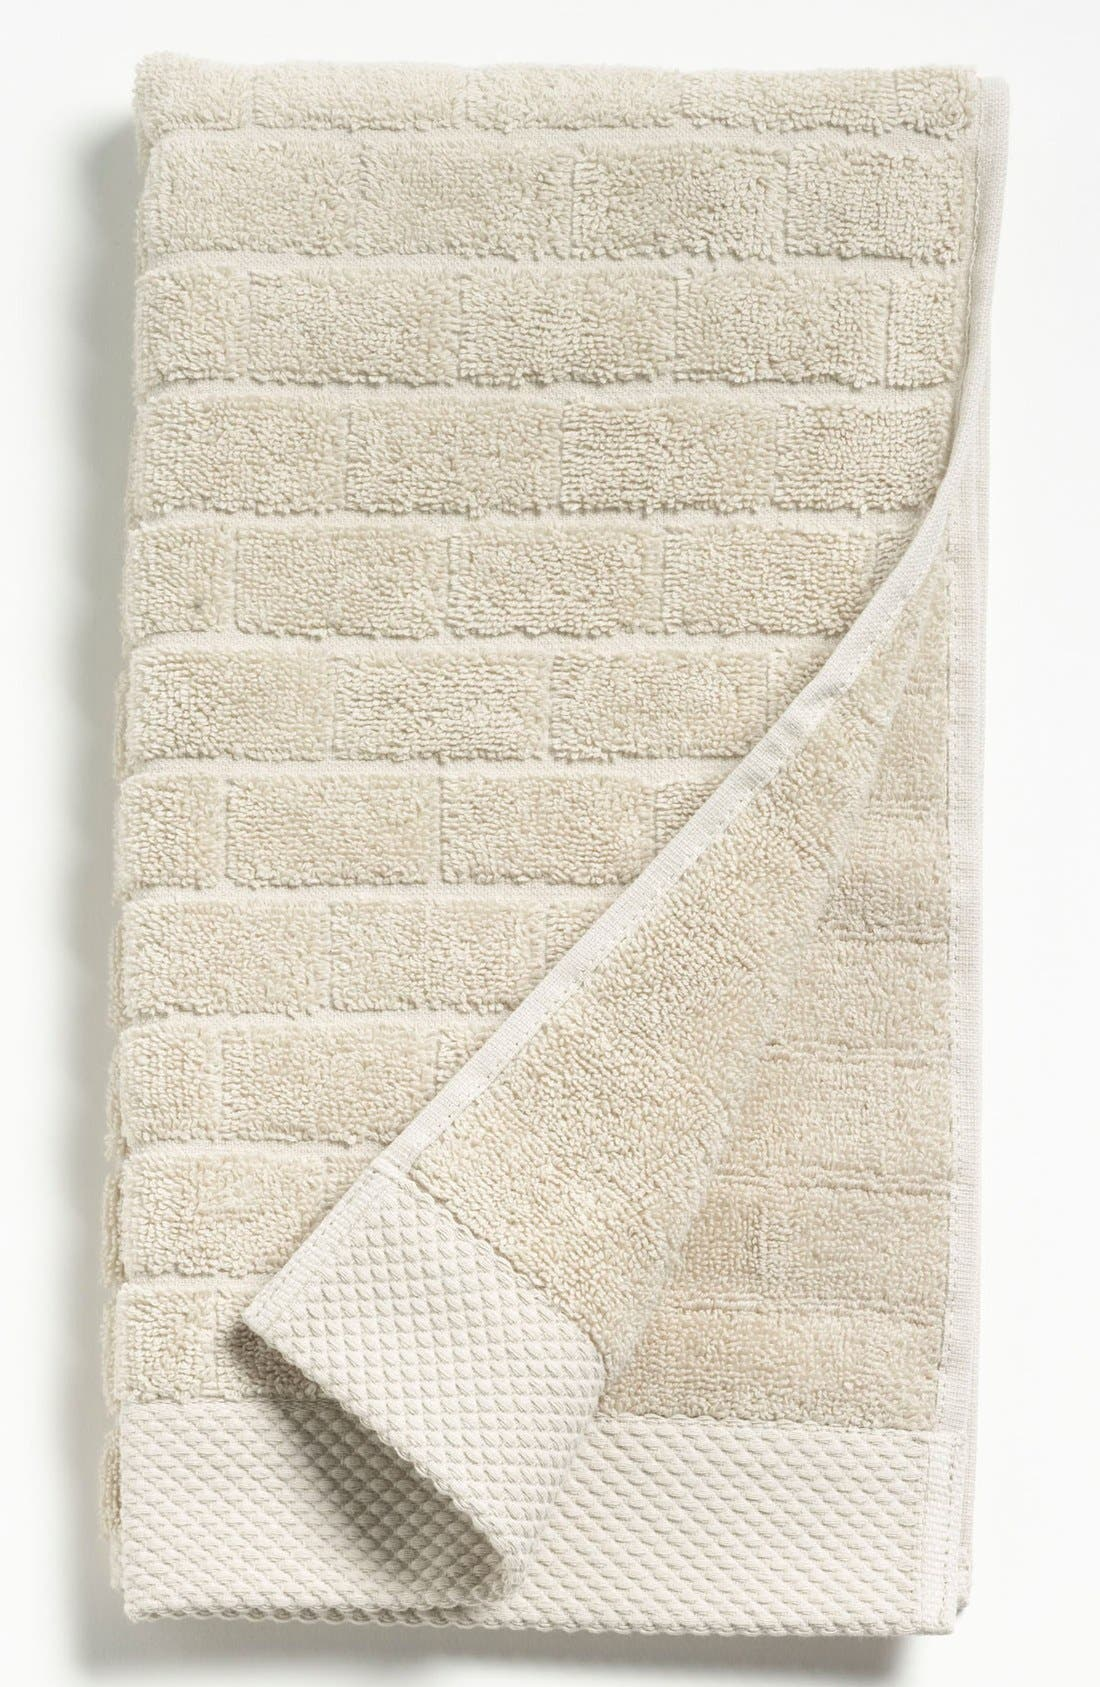 Alternate Image 1 Selected - Waterworks Studio 'Subway' Combed Cotton Hand Towel (Online Only)